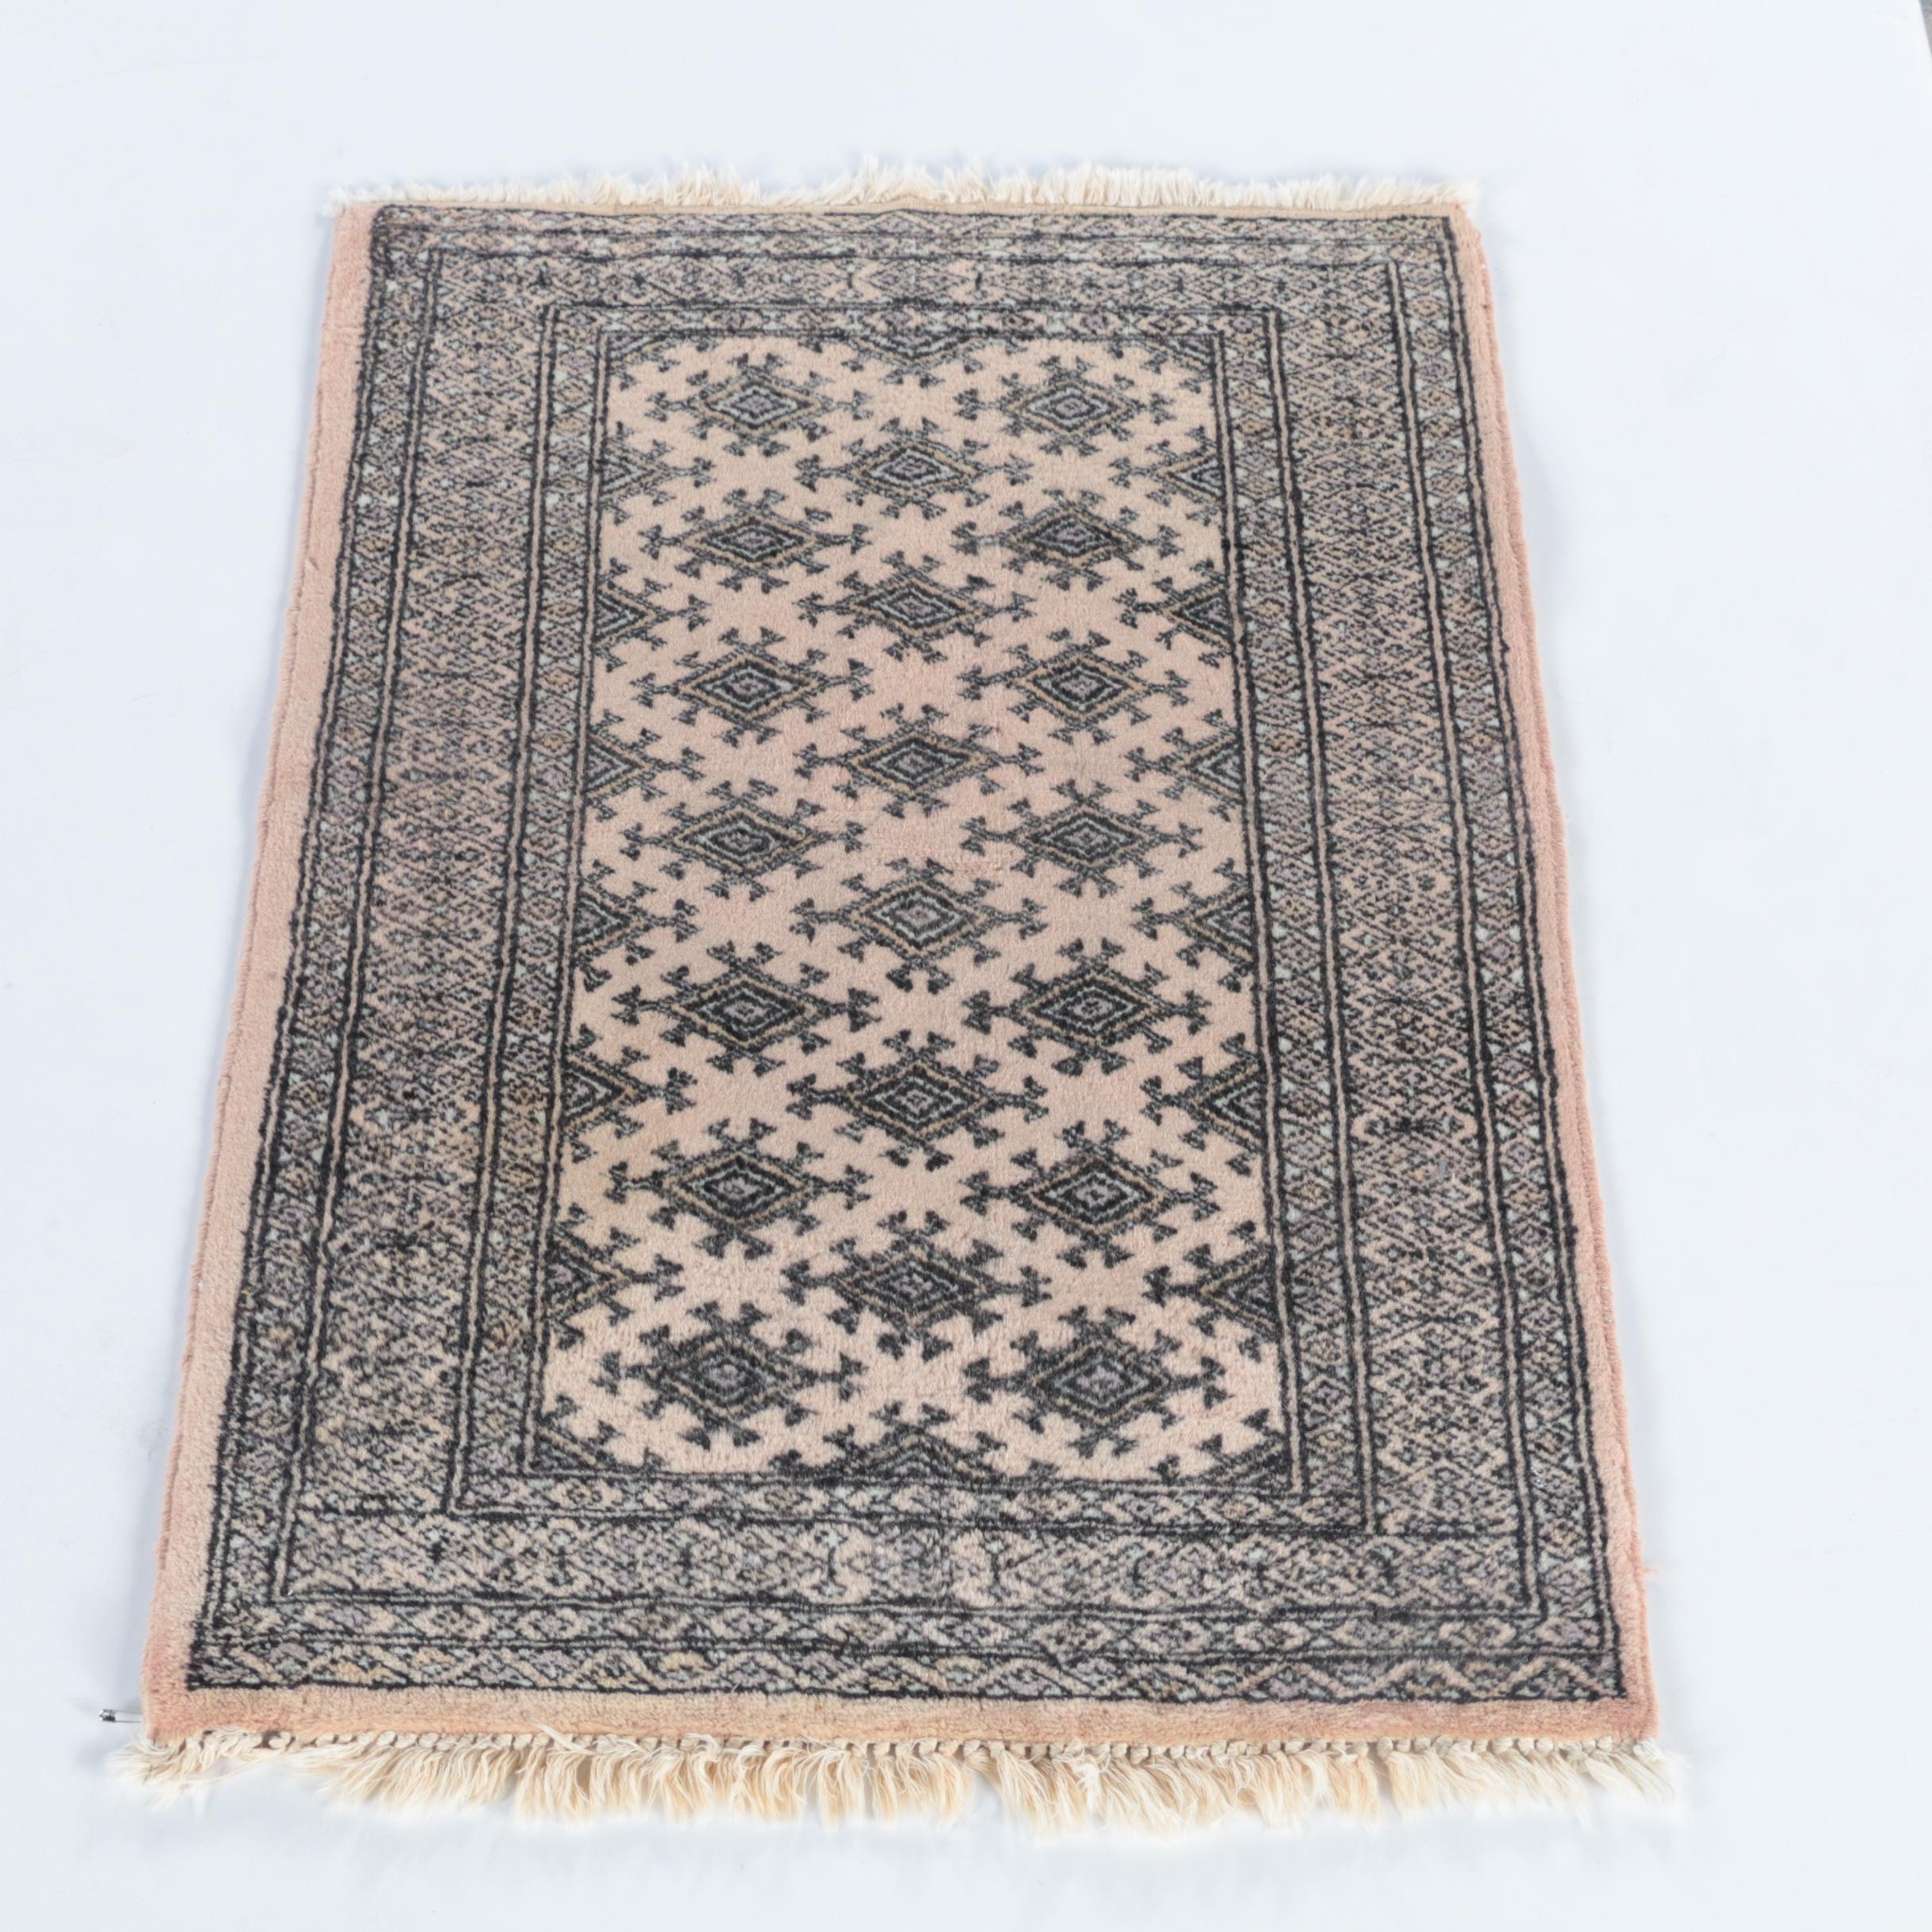 Hand-Knotted Pakistani Wool Accent Rug by Ikea